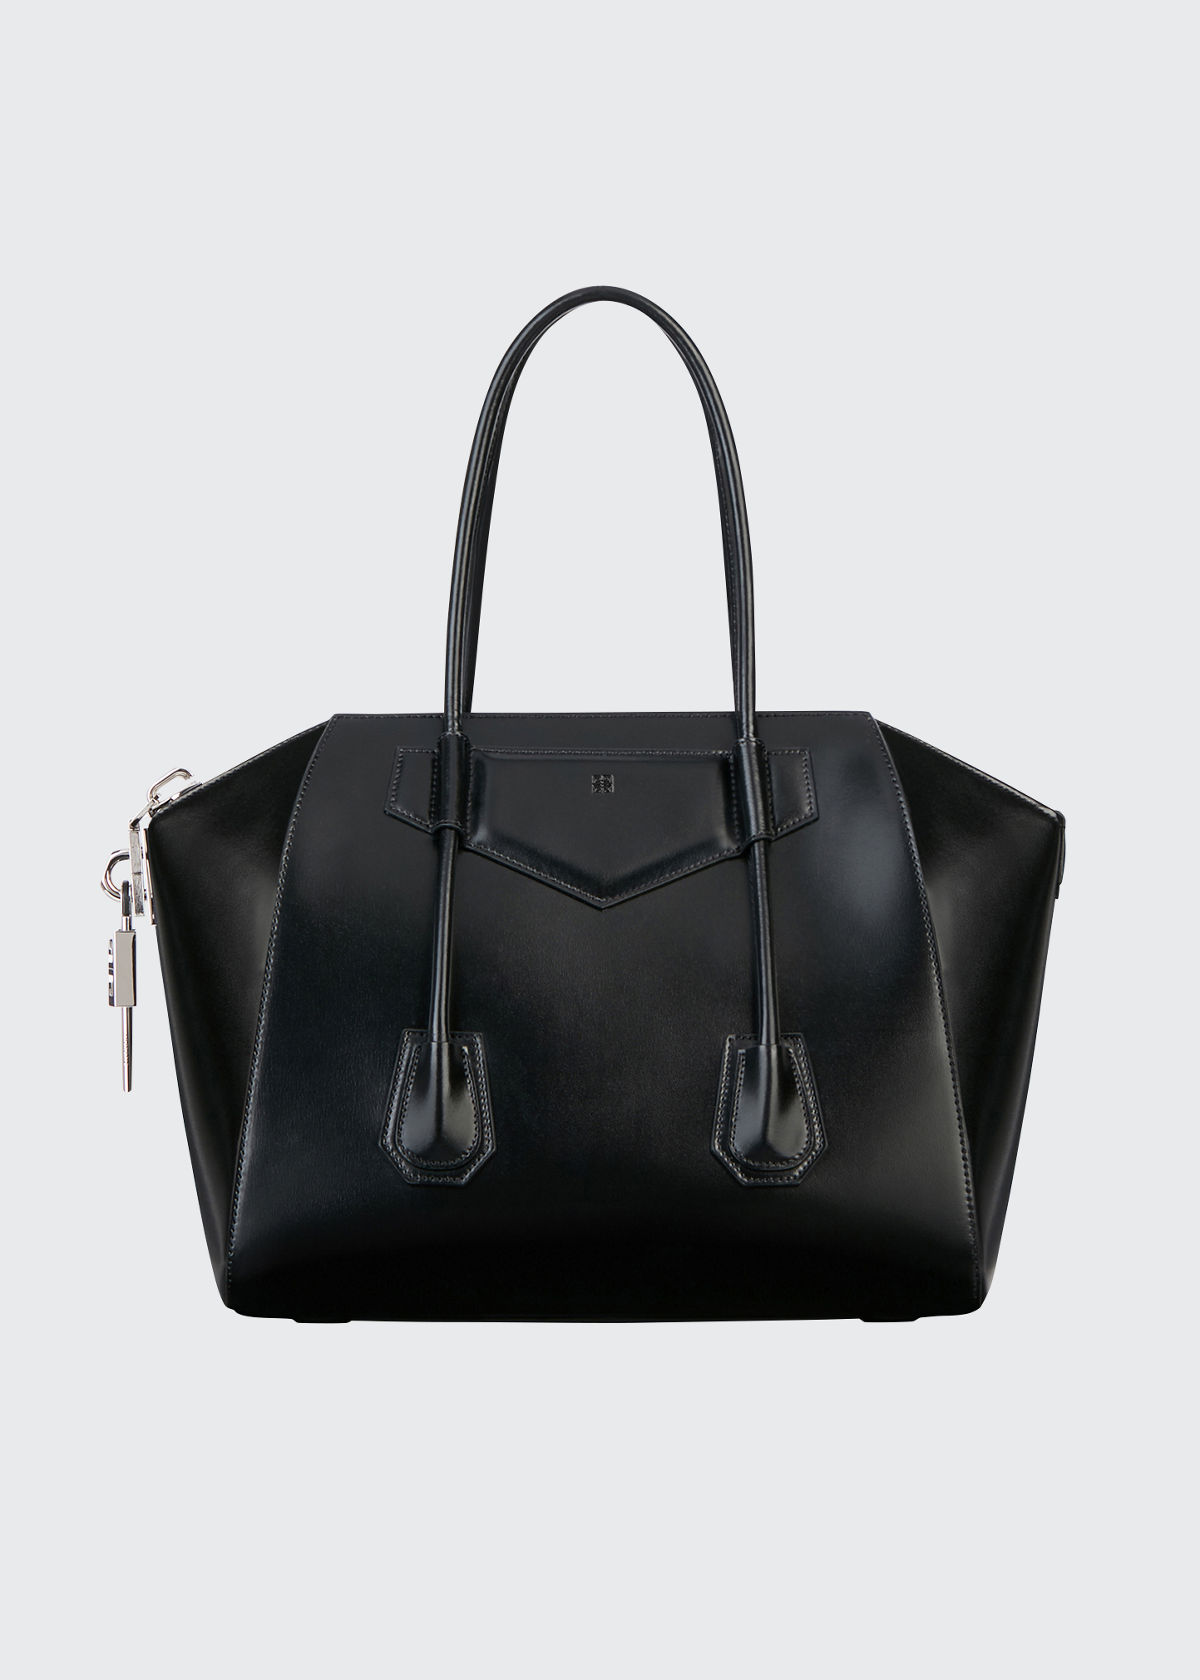 Givenchy MEDIUM ANTIGONA LOCK SATCHEL BAG IN CALF LEATHER